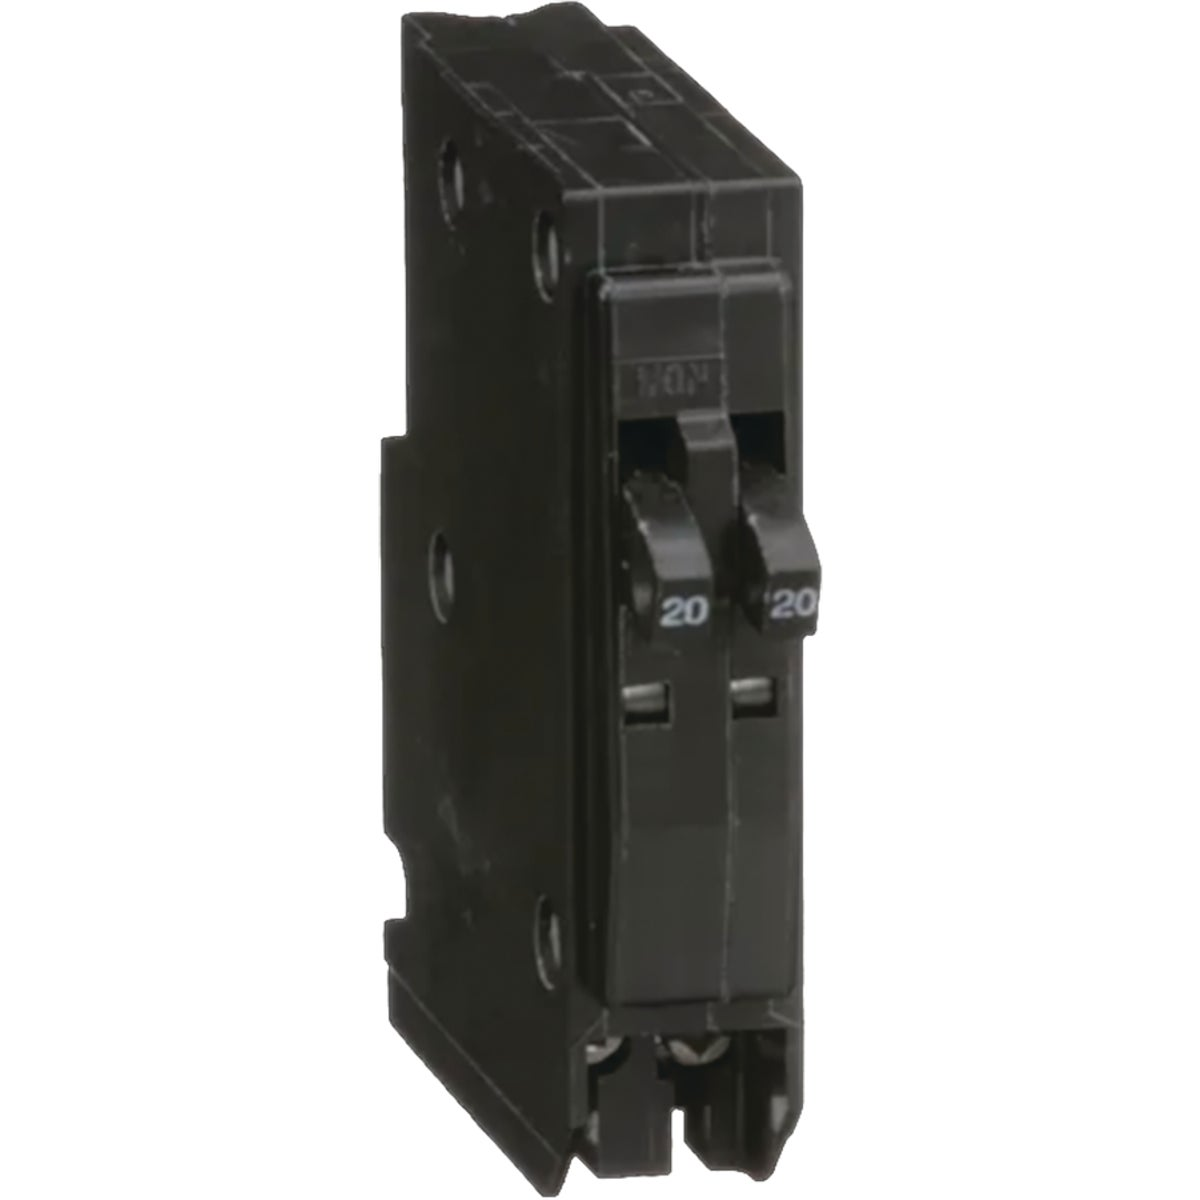 20A/20A TANDEM BREAKER - QOT2020CP by Square D Co